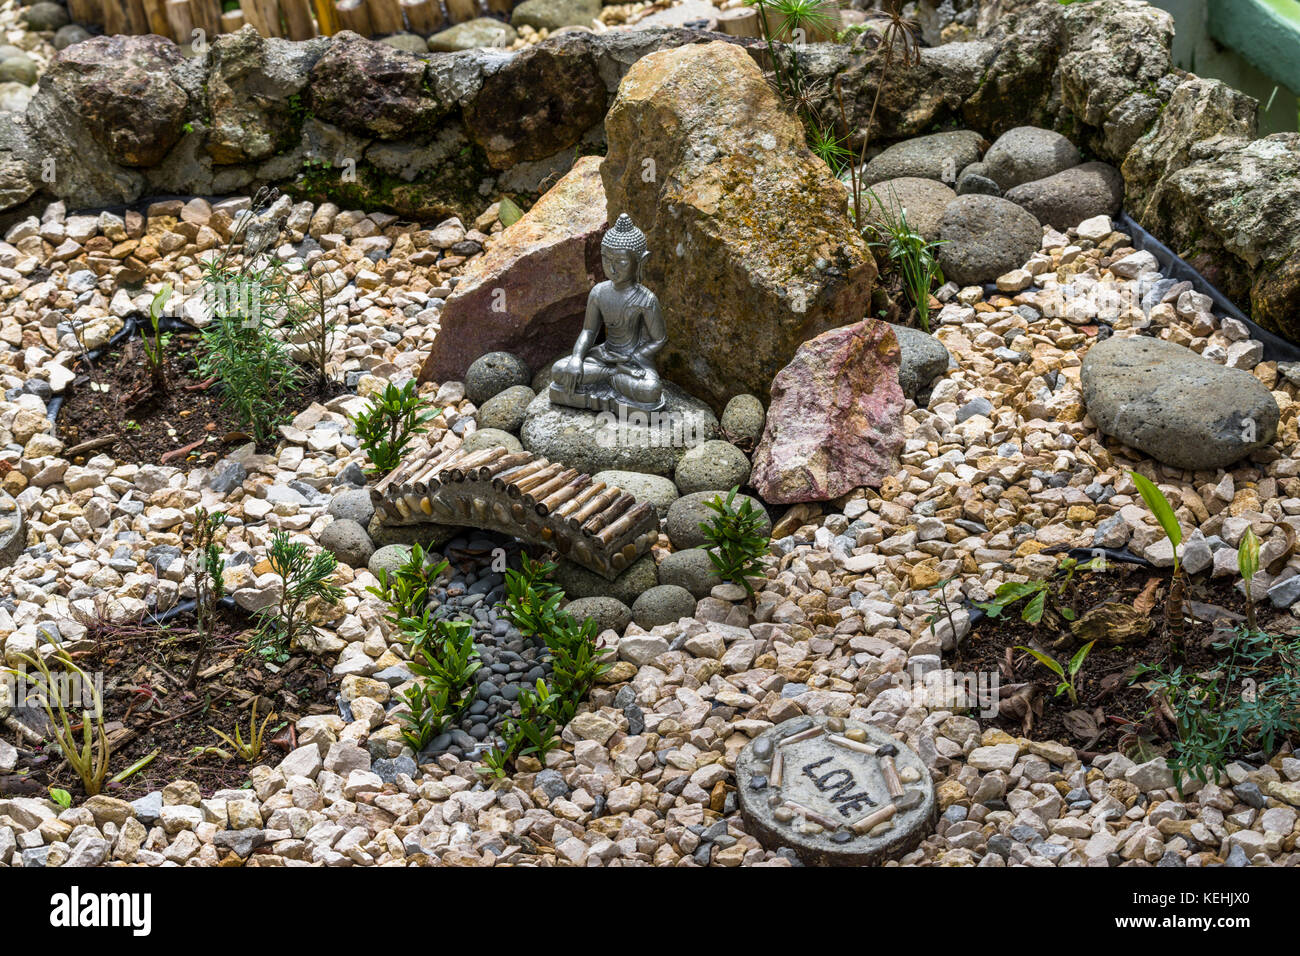 Garden Ideas Zen Stone Garden With Small Sitting Buddha Statue Stock - Stone-garden-ideas